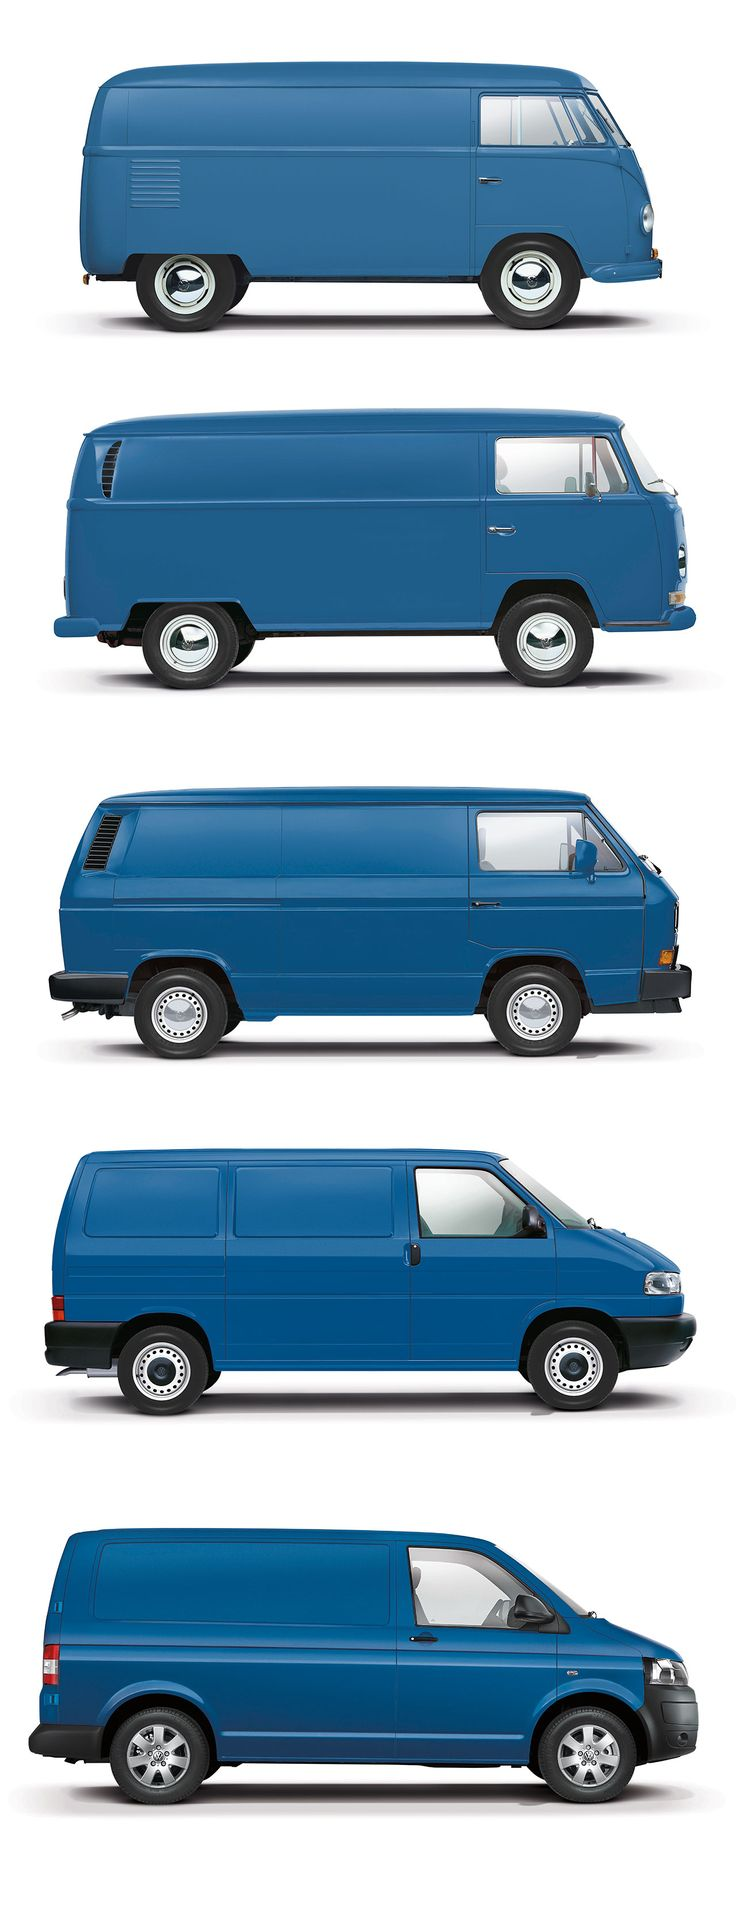 Sixth-gen Volkswagen Transporter previewed in design render - Car Body Design